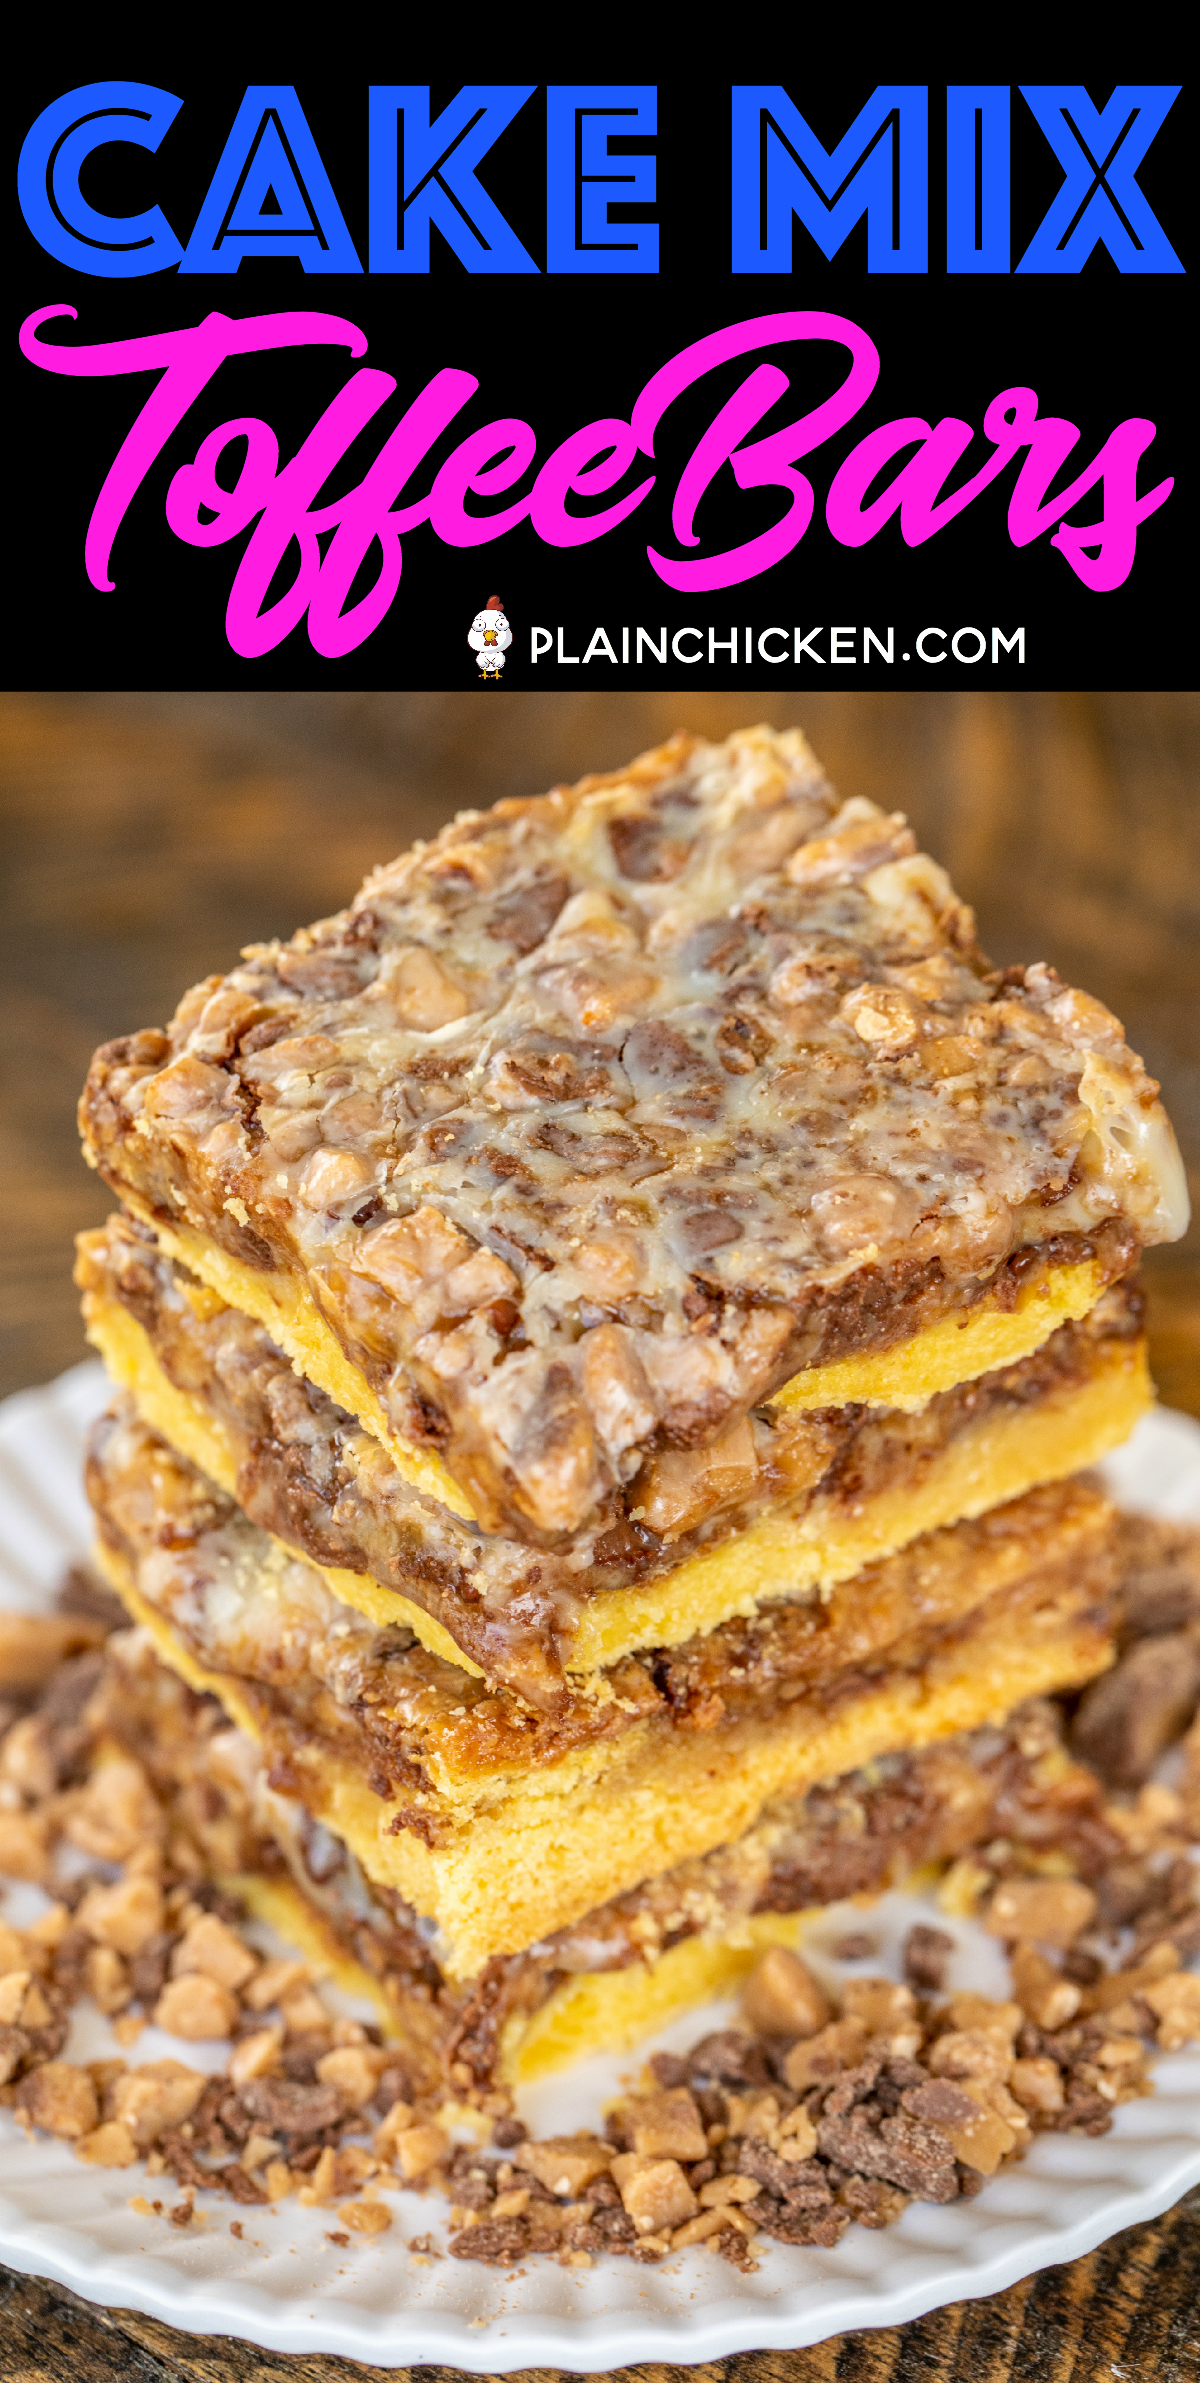 Cake Mix Toffee Bars Only 5 Ingredients Cake Mix Eggs Butter Toffee Bits And Sweetened Condensed Milk I Took The Cake Mix Cookie Bars Desserts Cake Mix